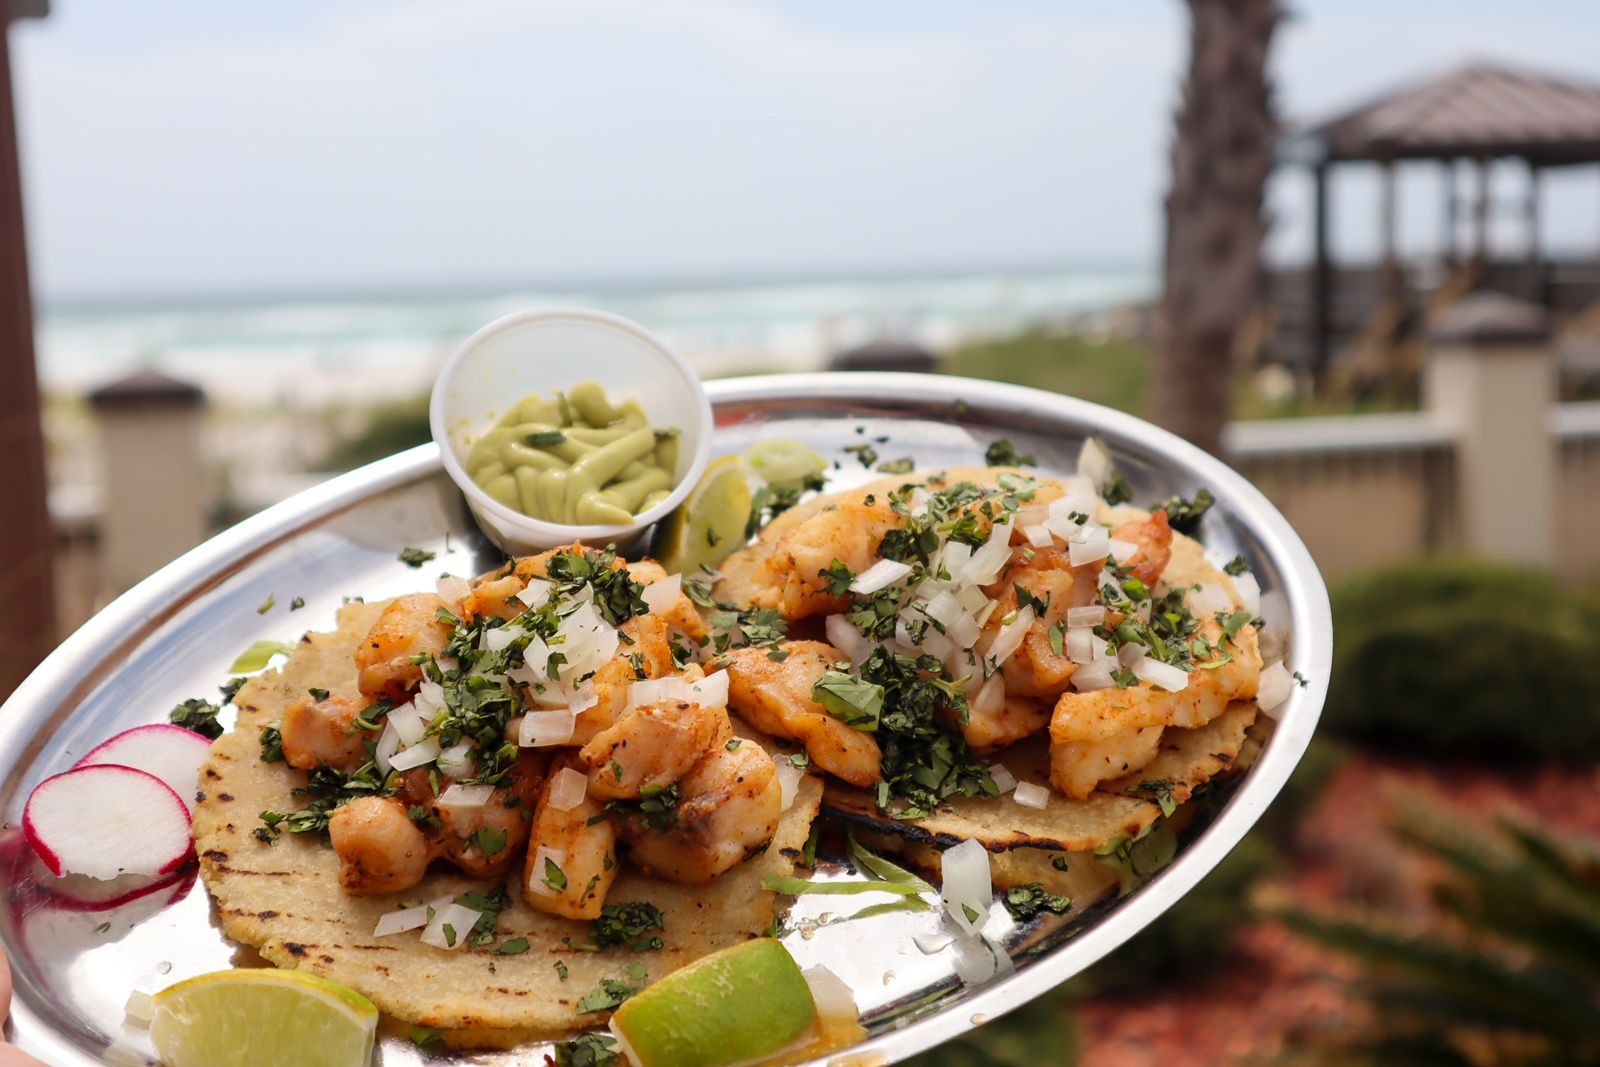 Pensacola Beach's Sal de Mar Restaurant is Shaking Up the Typical Hotel Bar Scene with Whimsical Cocktails and Authentic Spanish Fare